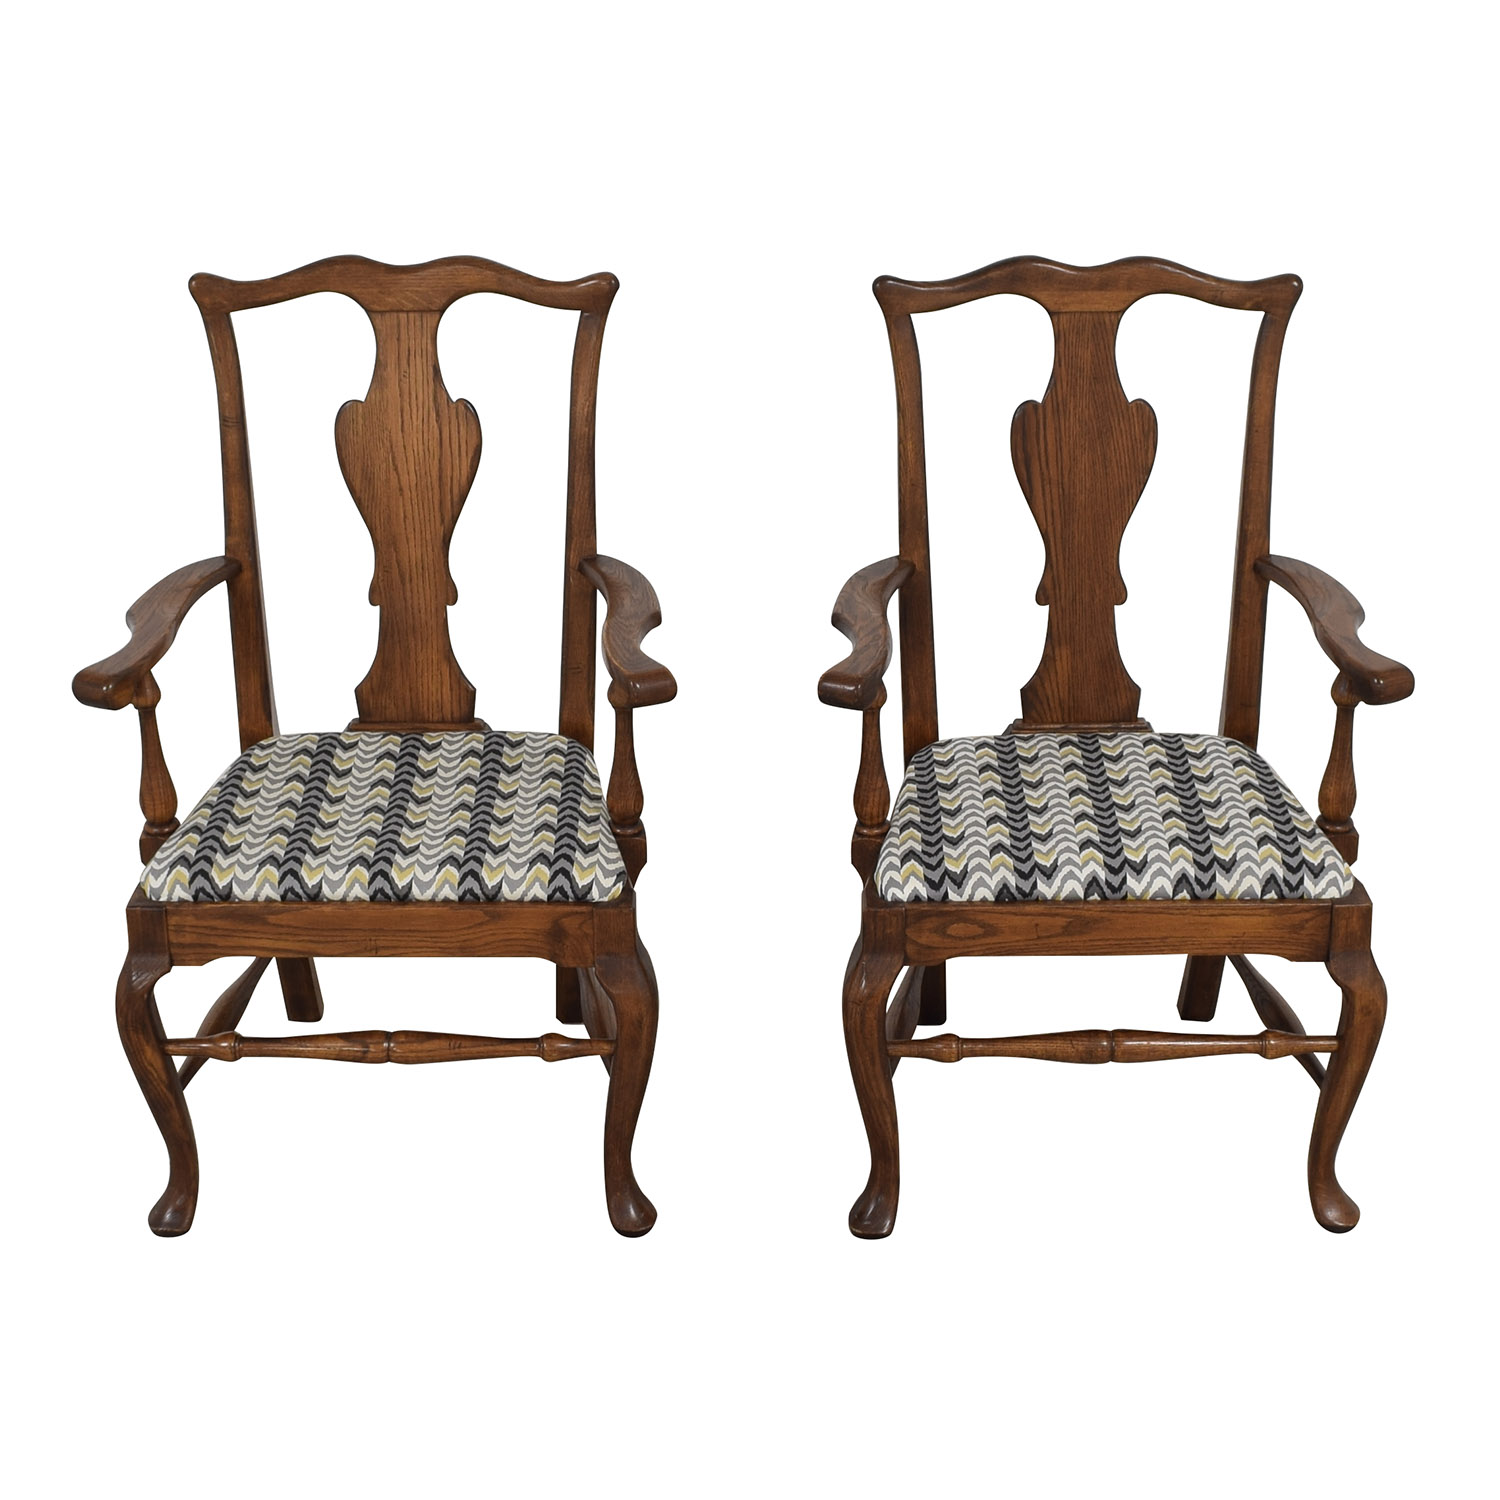 buy Ethan Allen Queen Anne Dining Arm Chairs Ethan Allen